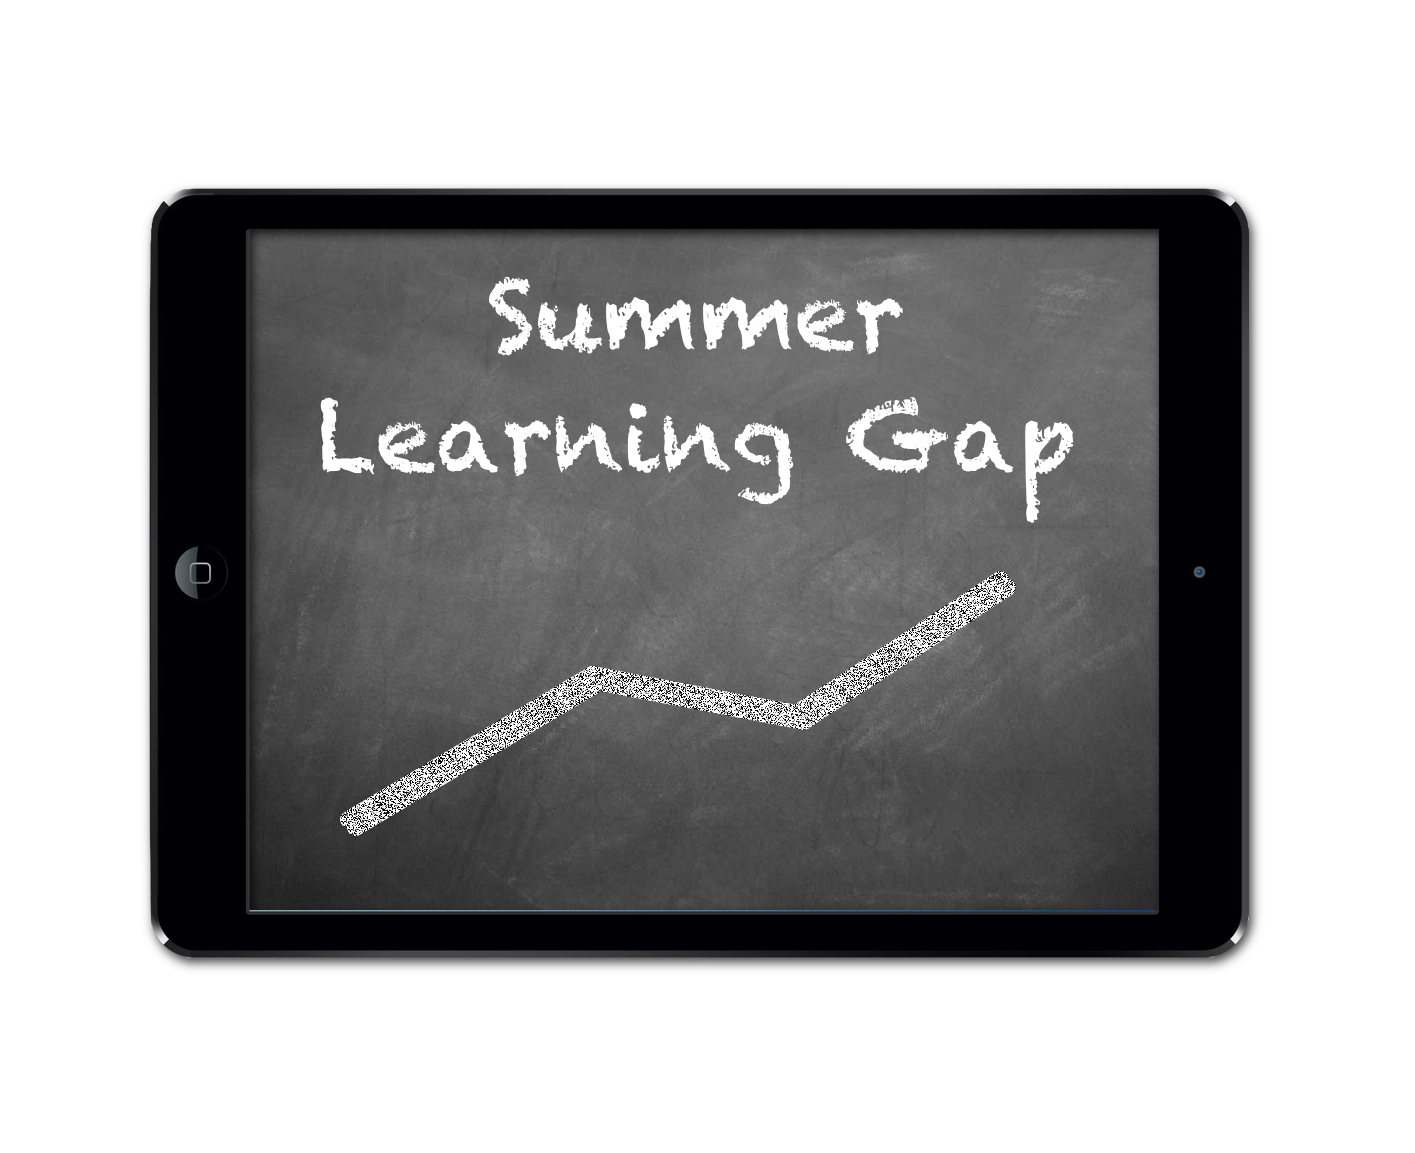 Summer learning gap